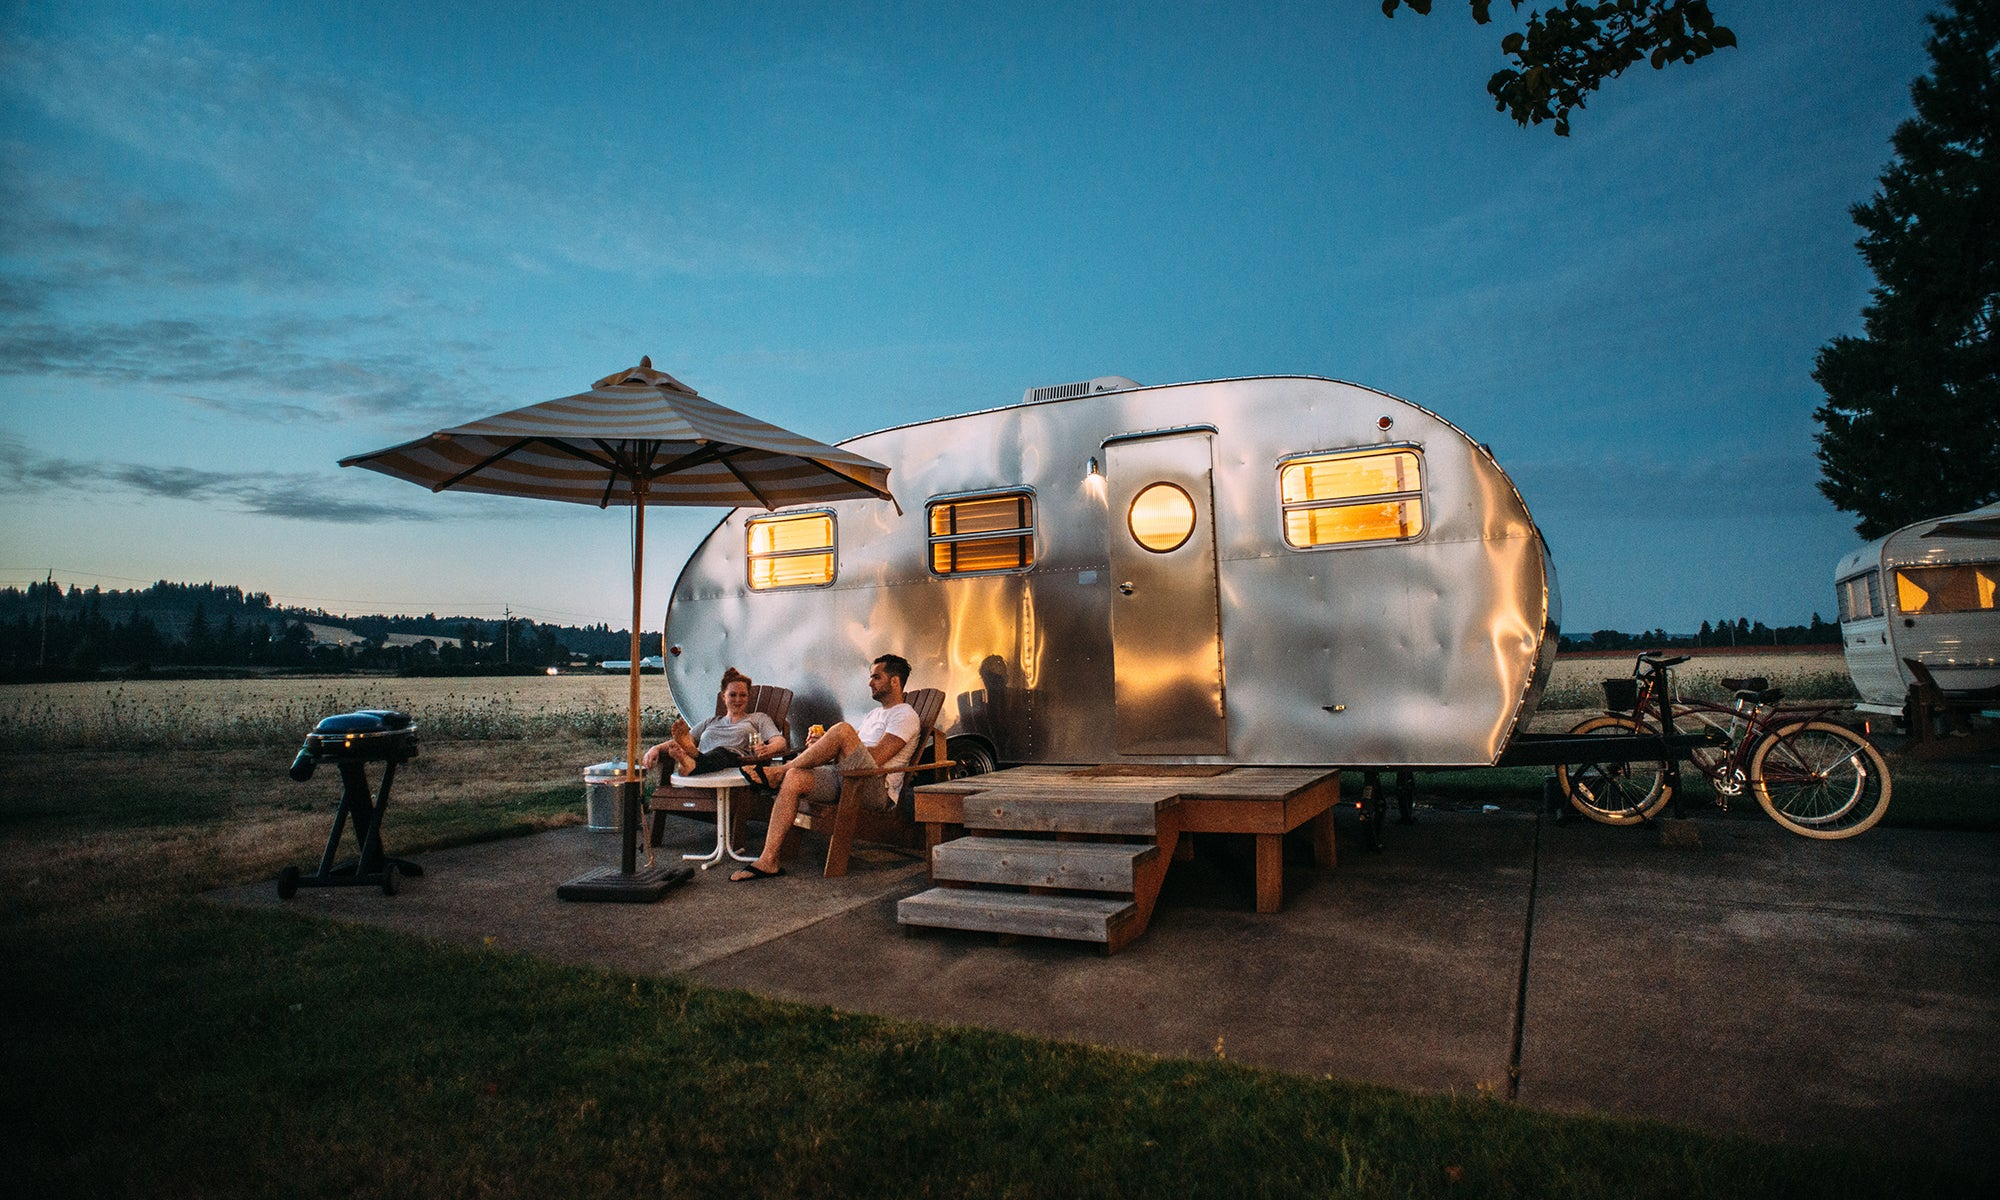 The Fire Pit Blog by Unique Camping + Marine Airstream RV Motorhome Camping In The Blue Ridge Mountains